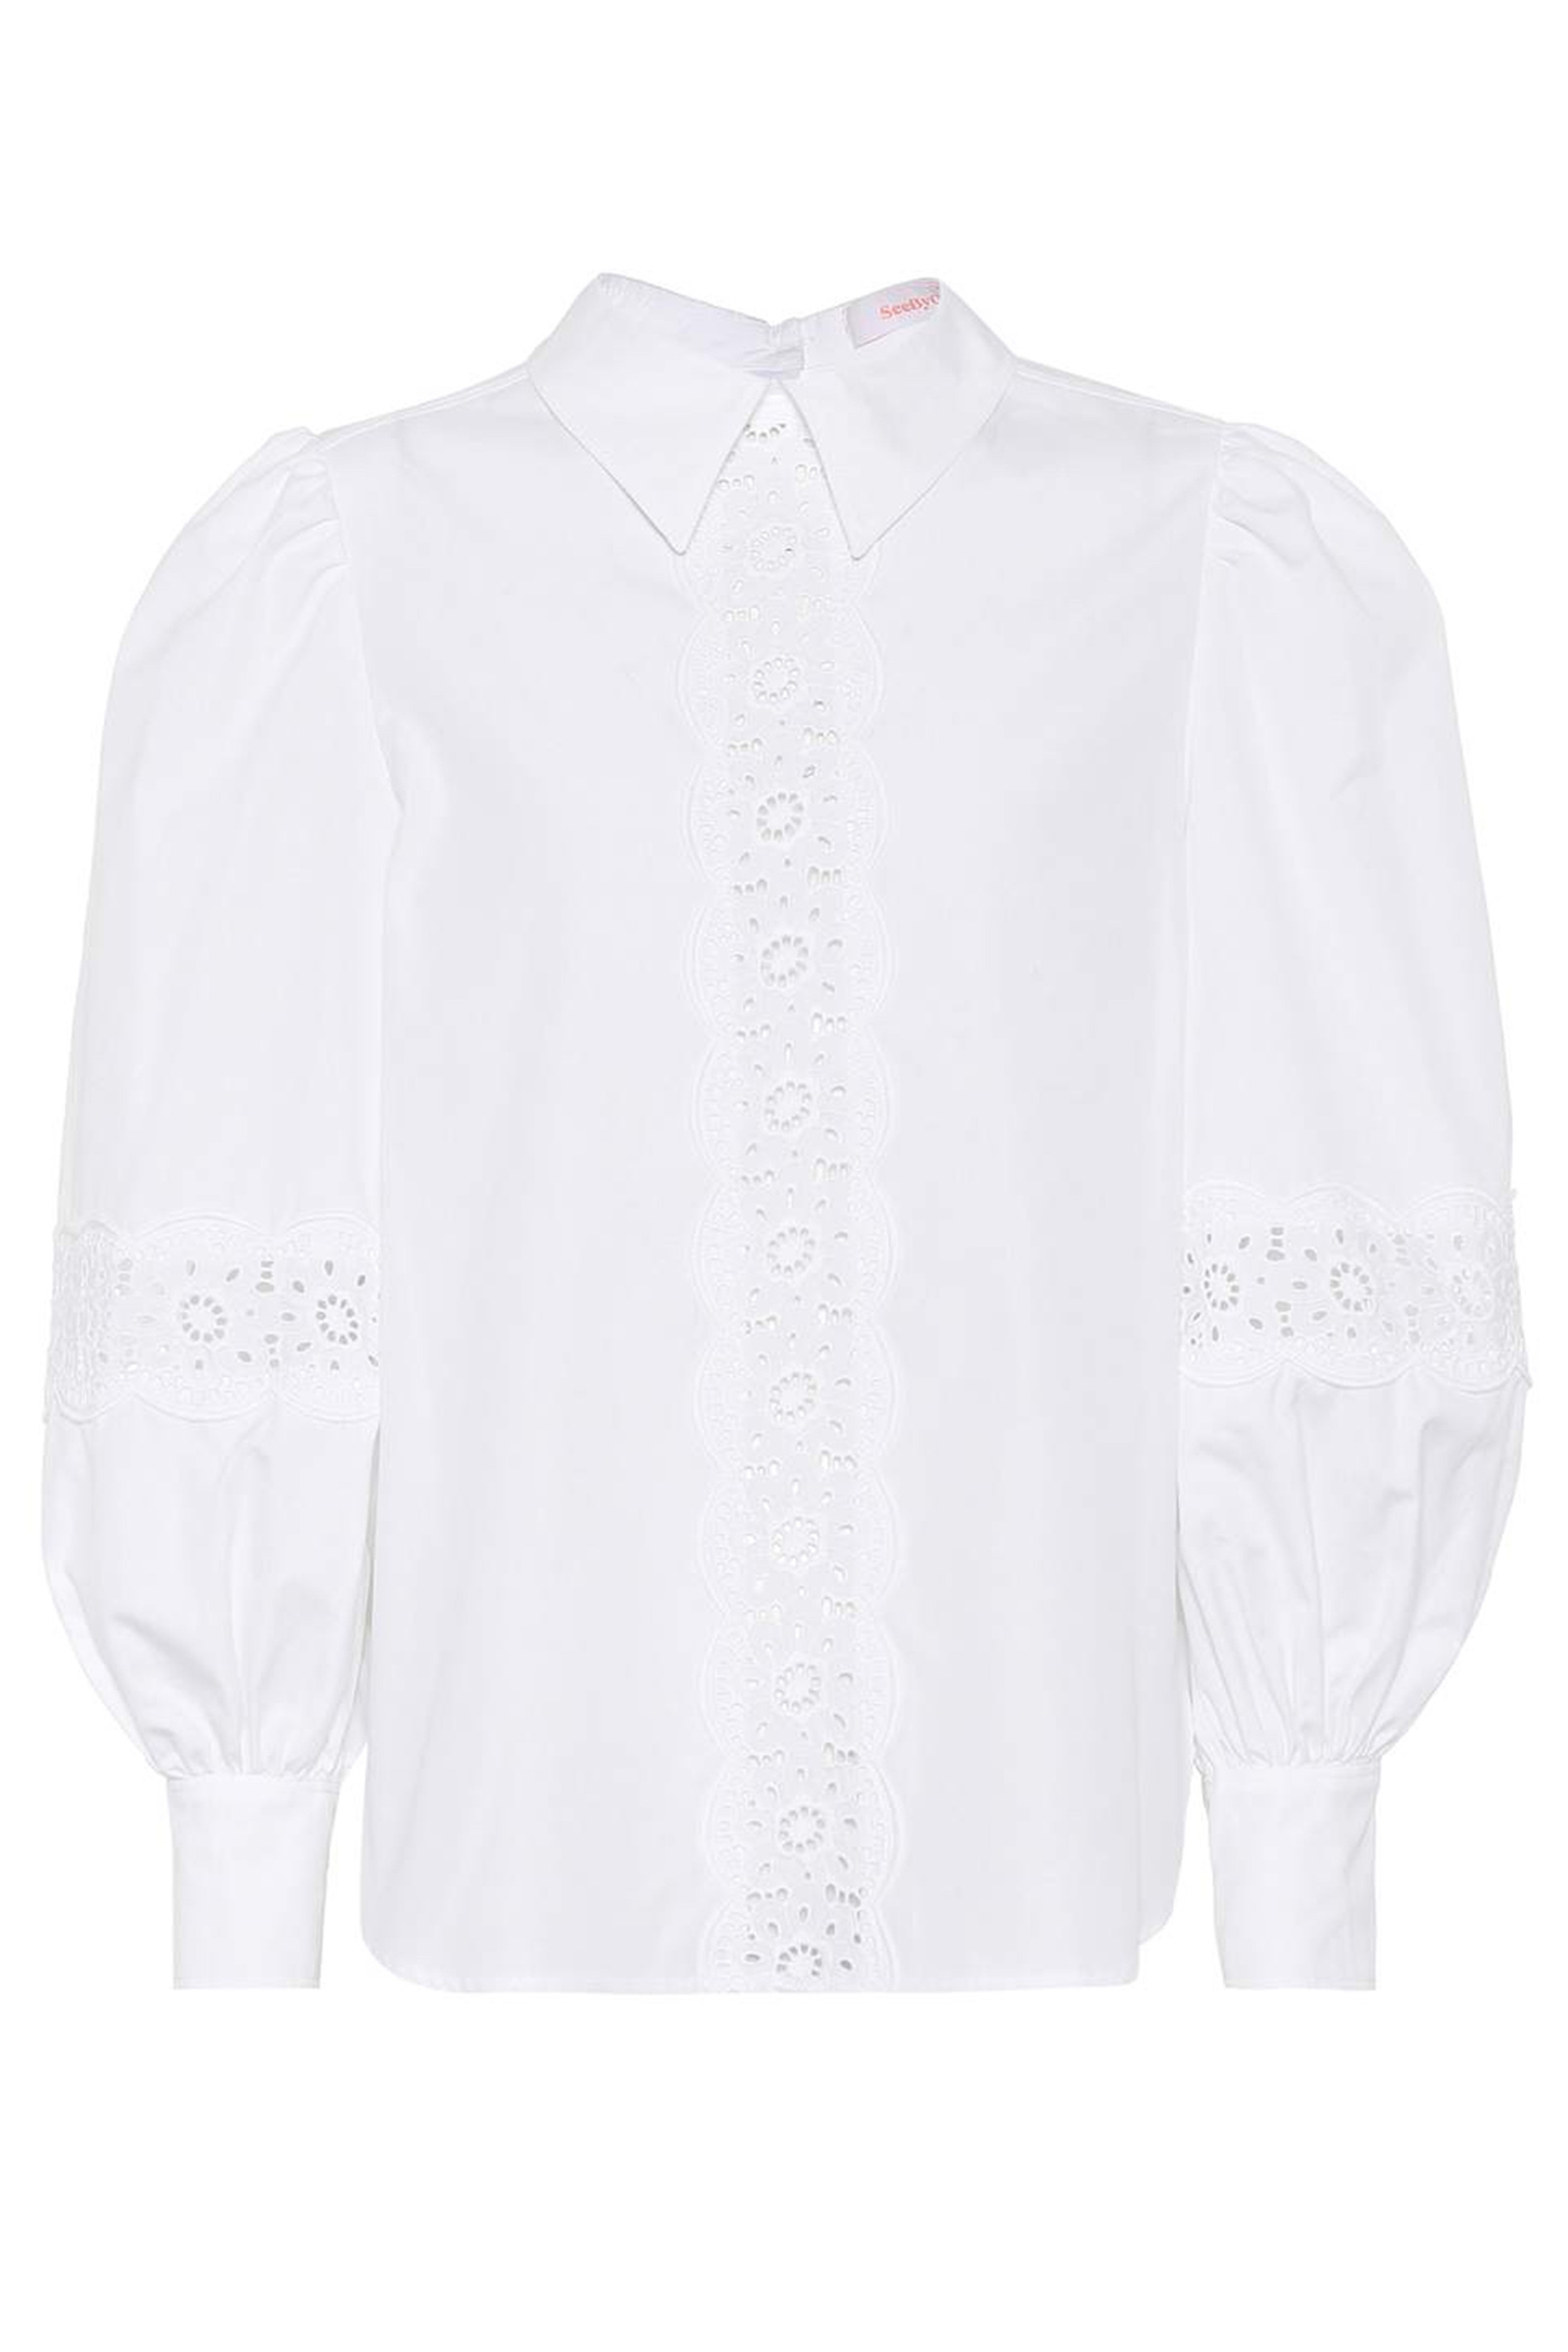 See by Chloe Button Up